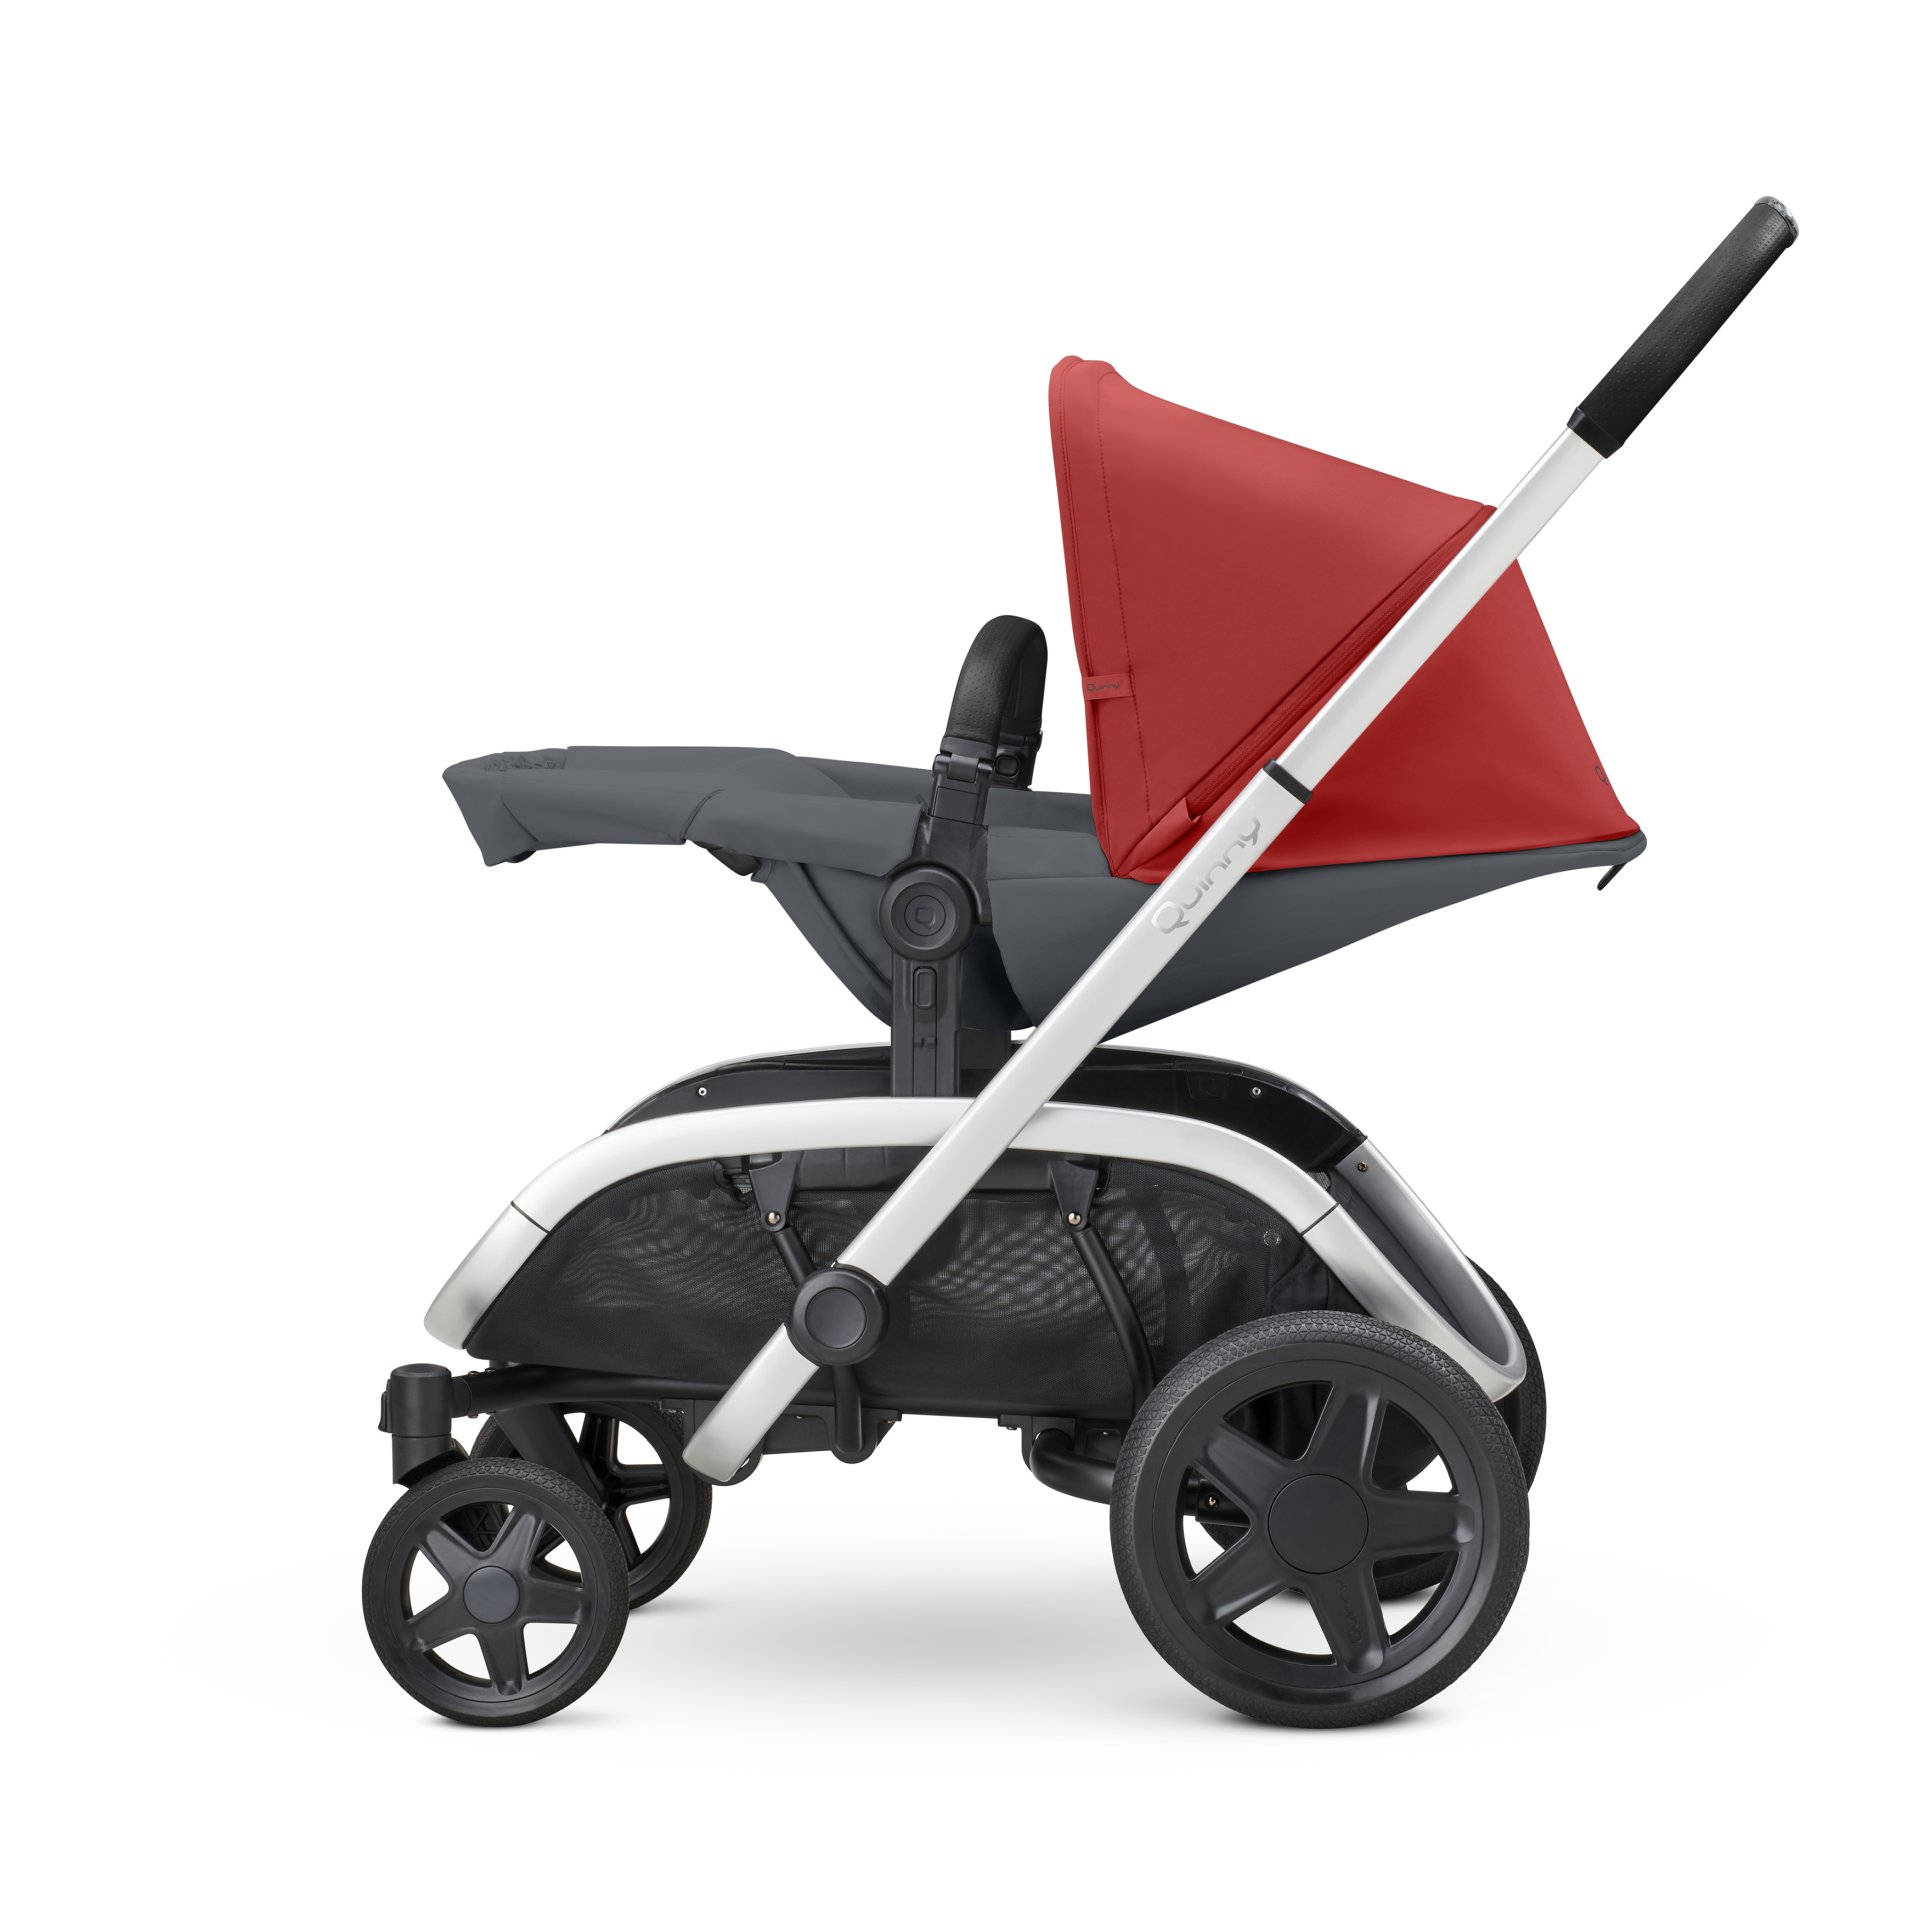 Kinderwagen Easywalker Duo Quinny Kinderwagen Hubb 2020 Red On Graphite Online Kaufen